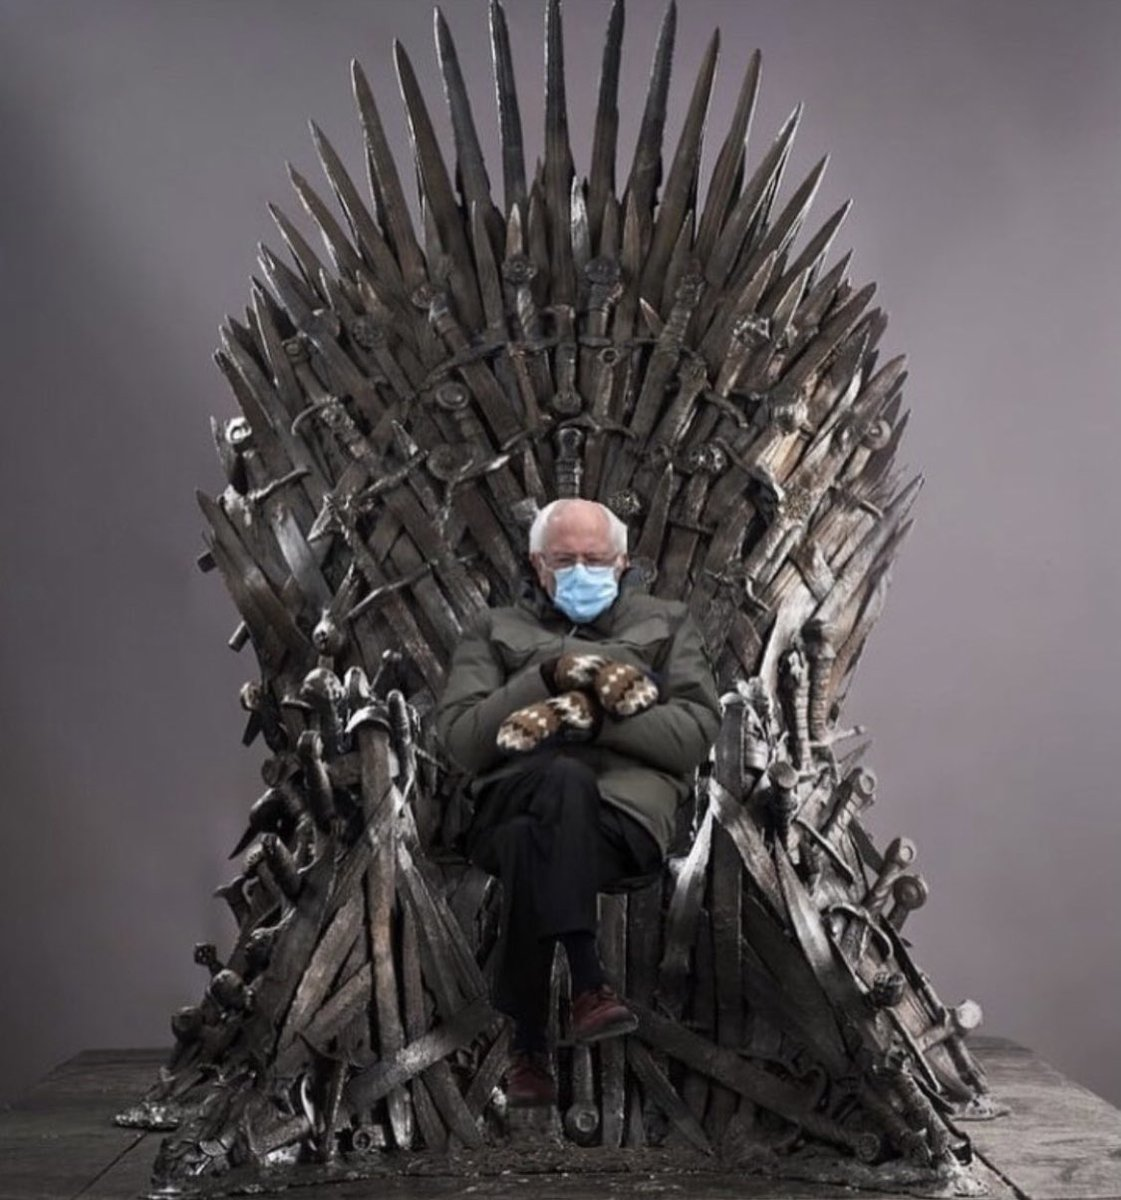 One chair to rule them all #BernieSanders #GameOfThrones #InaugurationDay